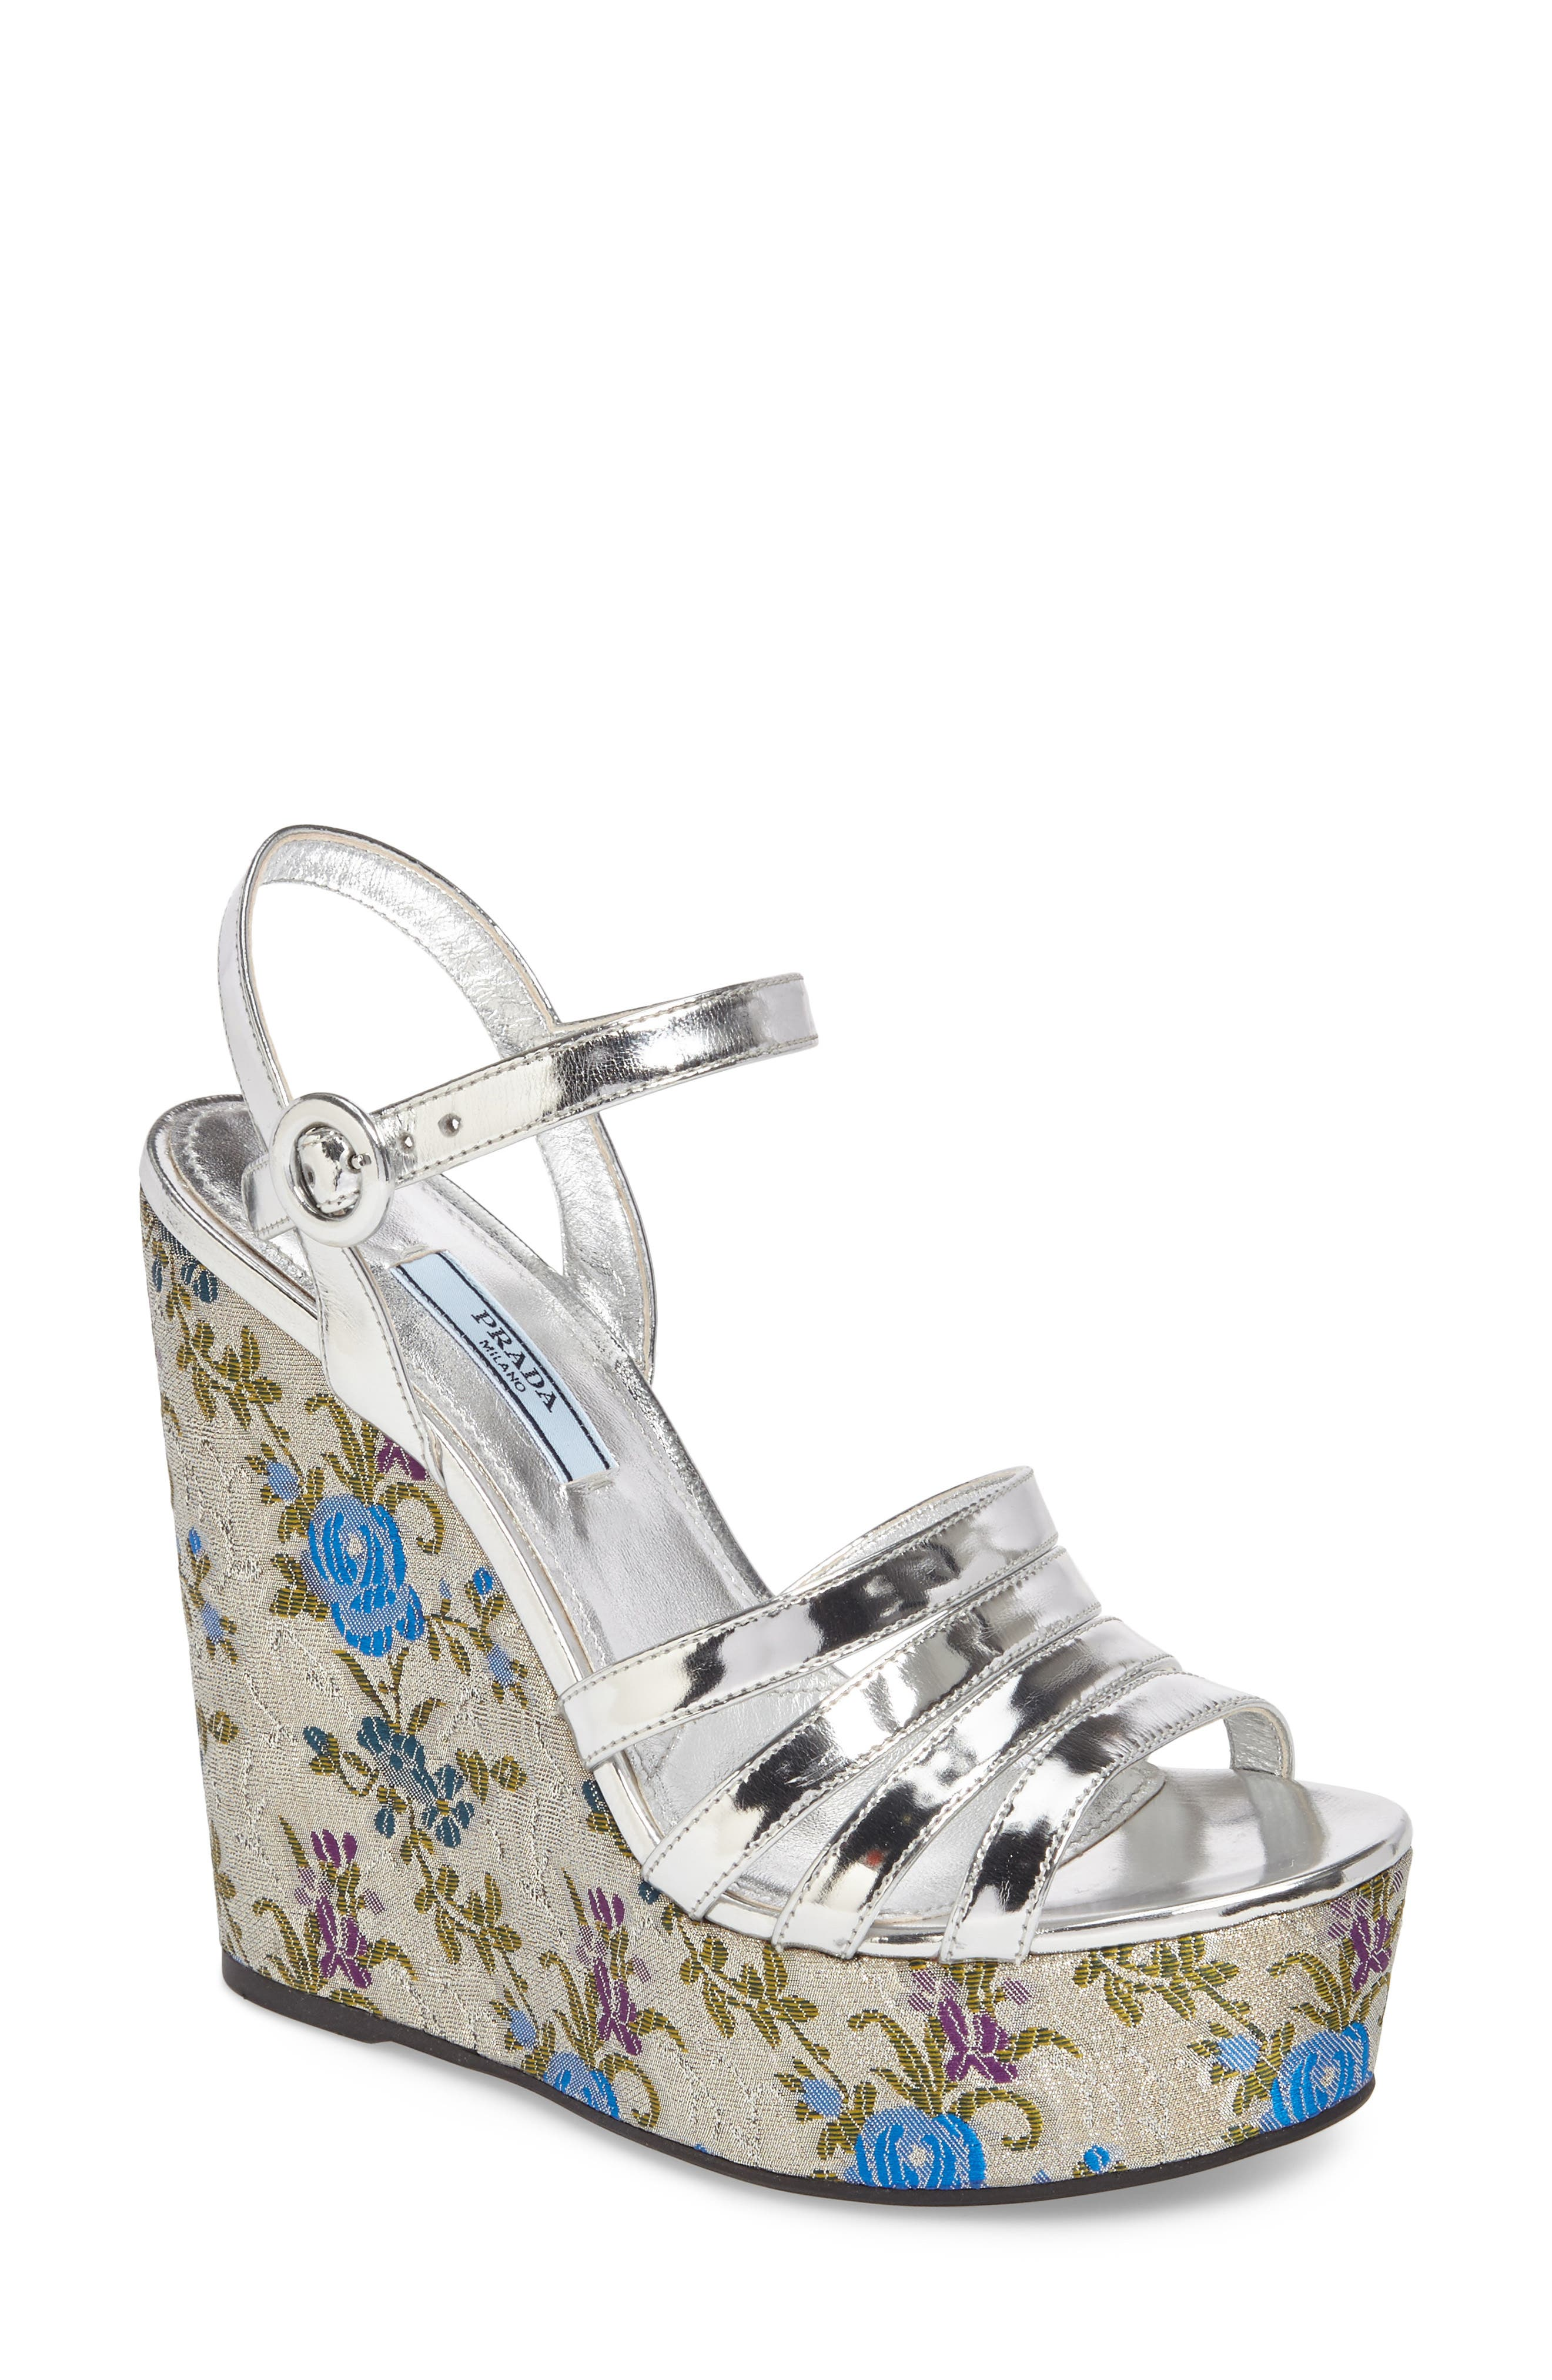 Floral Wedge Platform Sandals,                         Main,                         color, Silver/ Blue